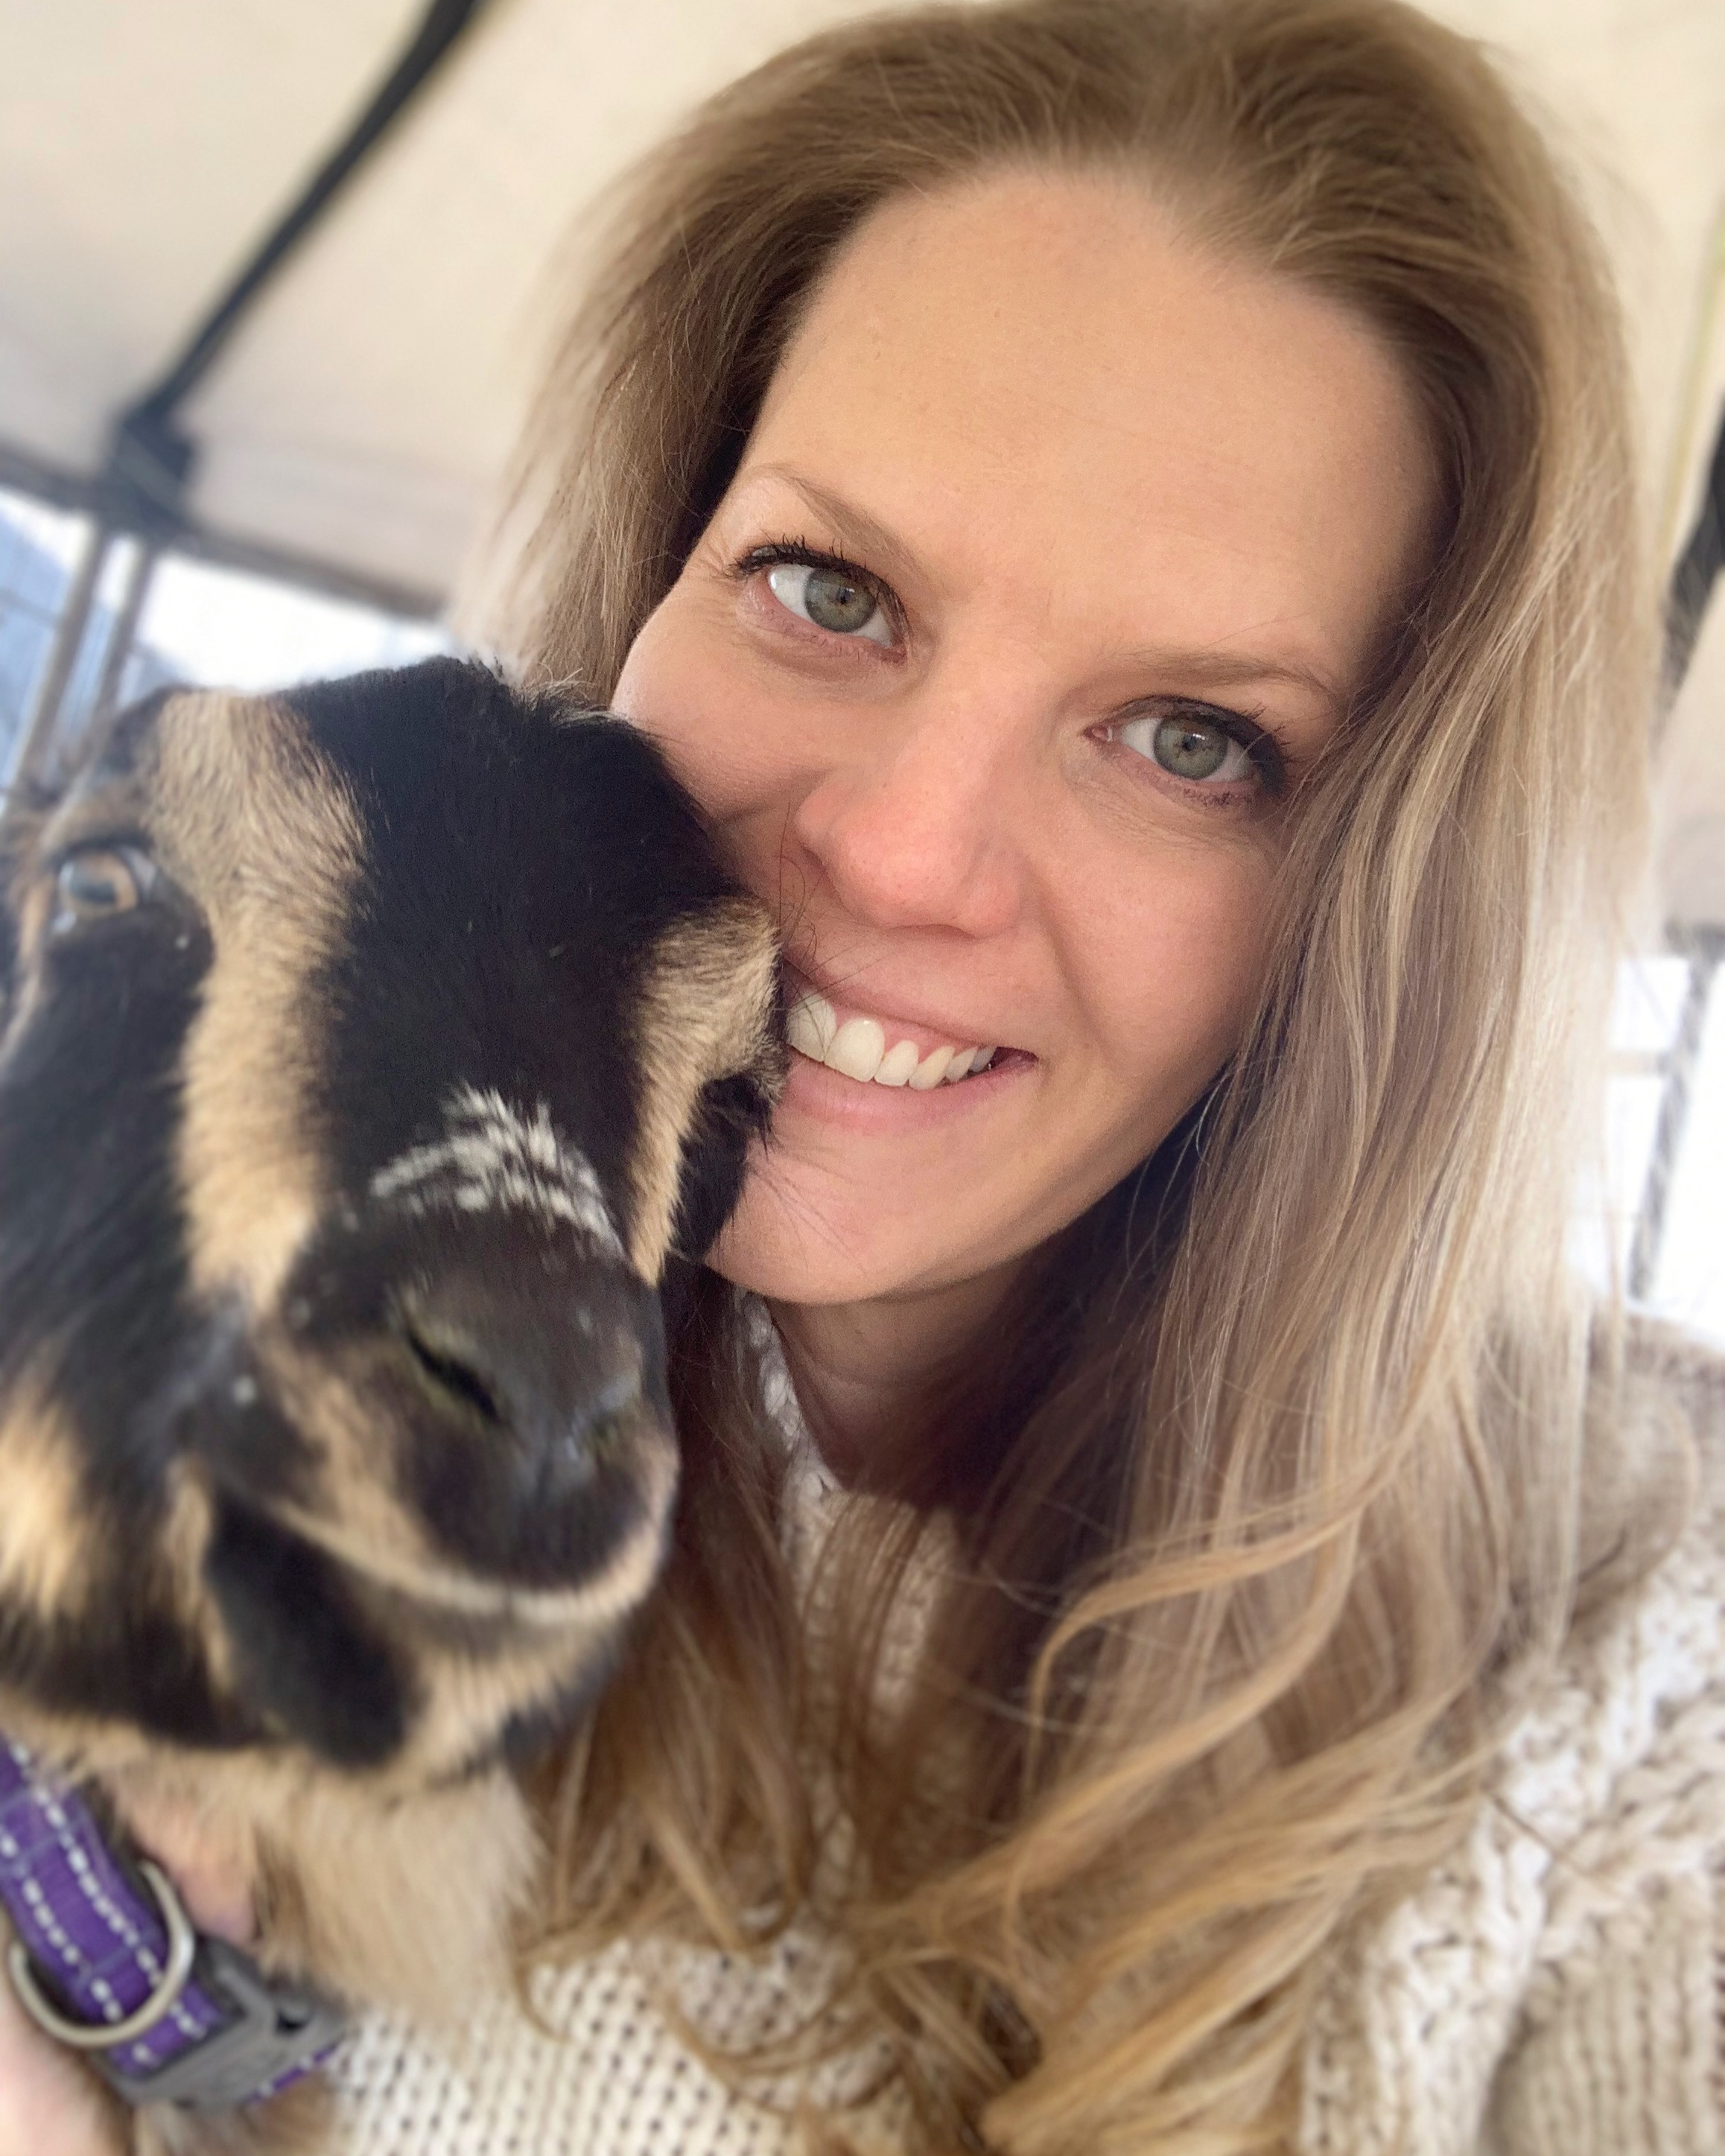 Kelly and her goat